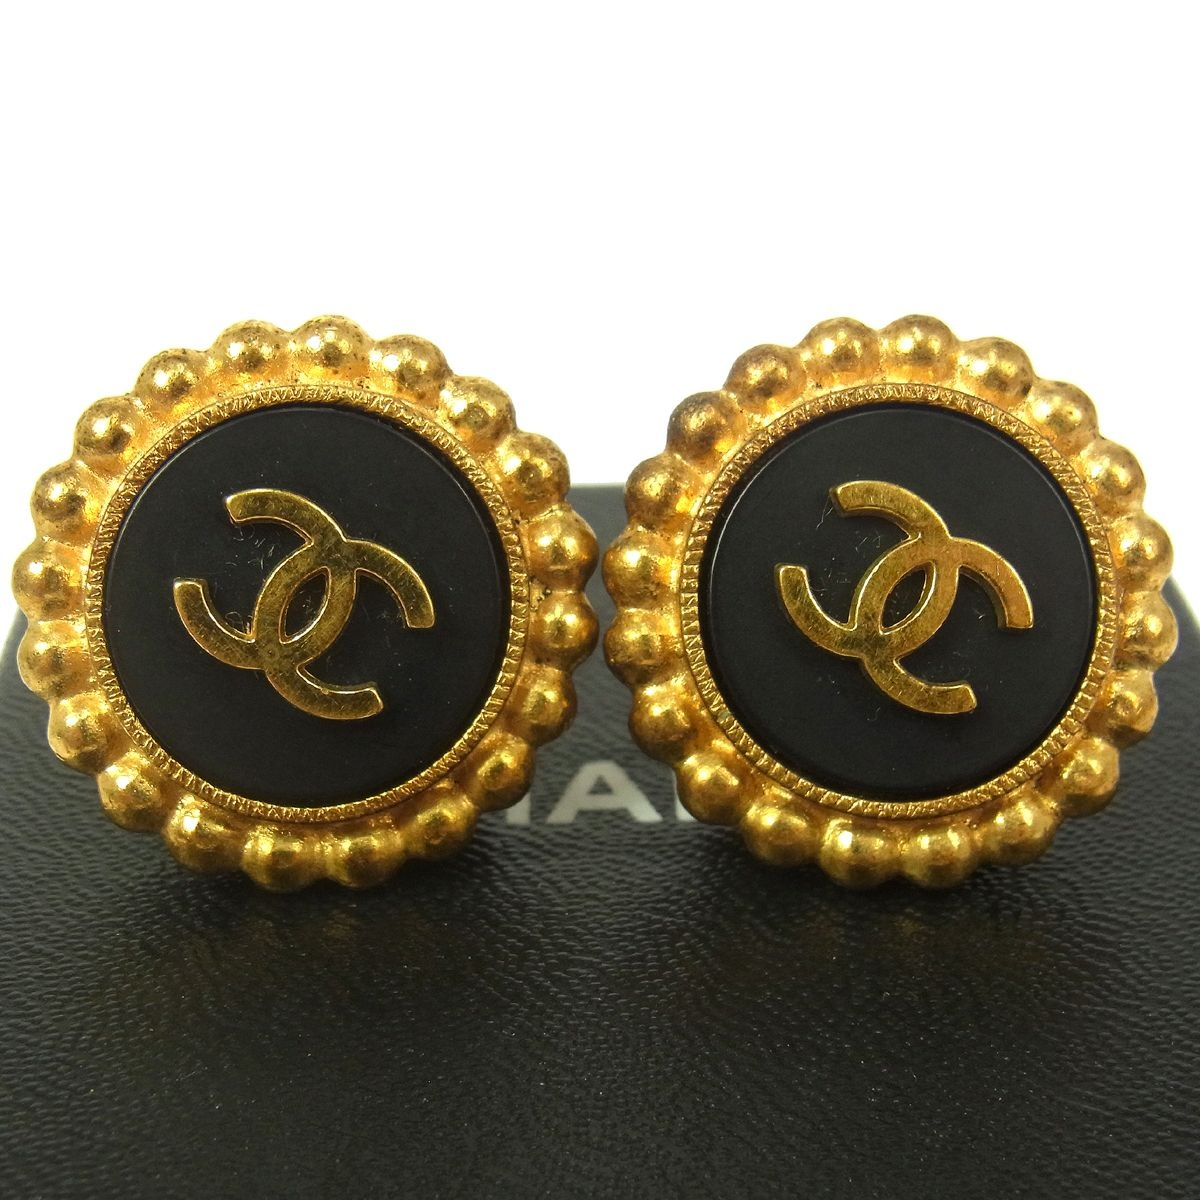 authentic vintage chanel gold black circle earrings with